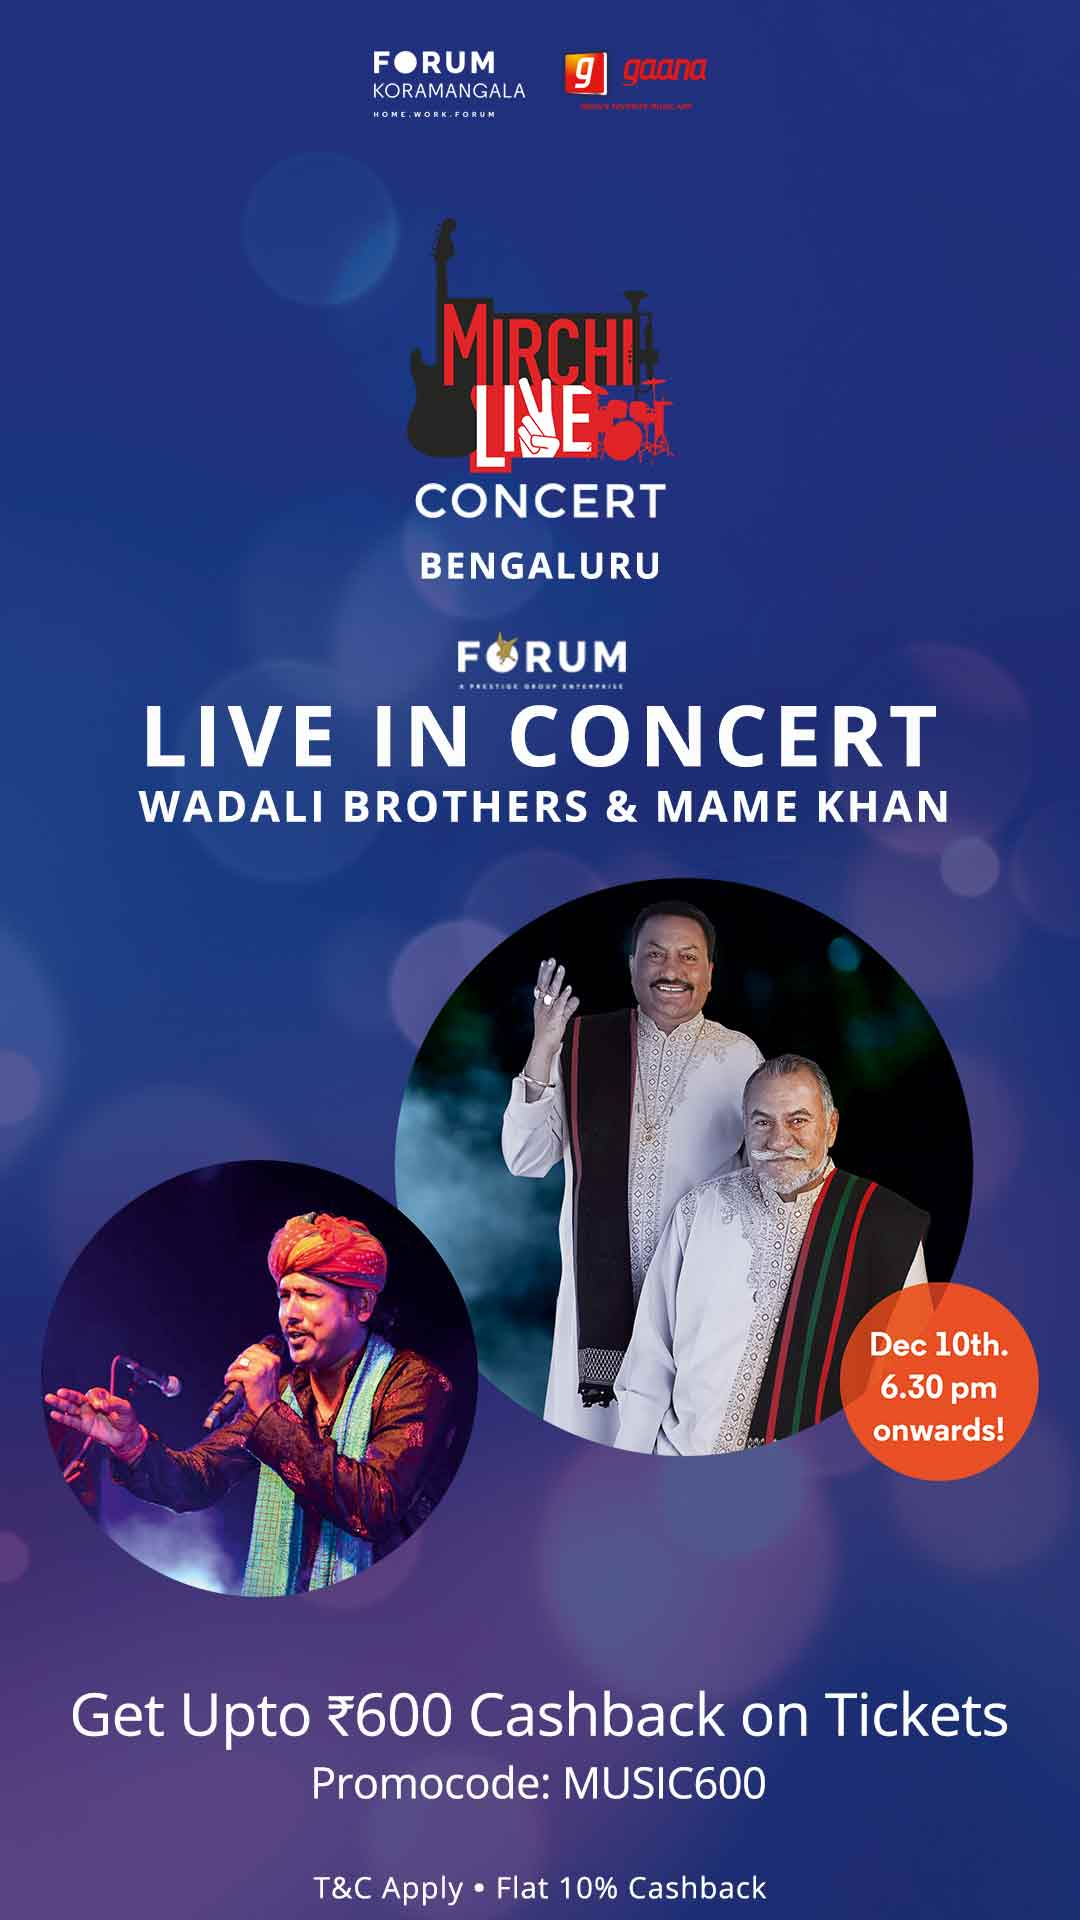 Forum rocks live with Wadali Brothers and Mame Khan